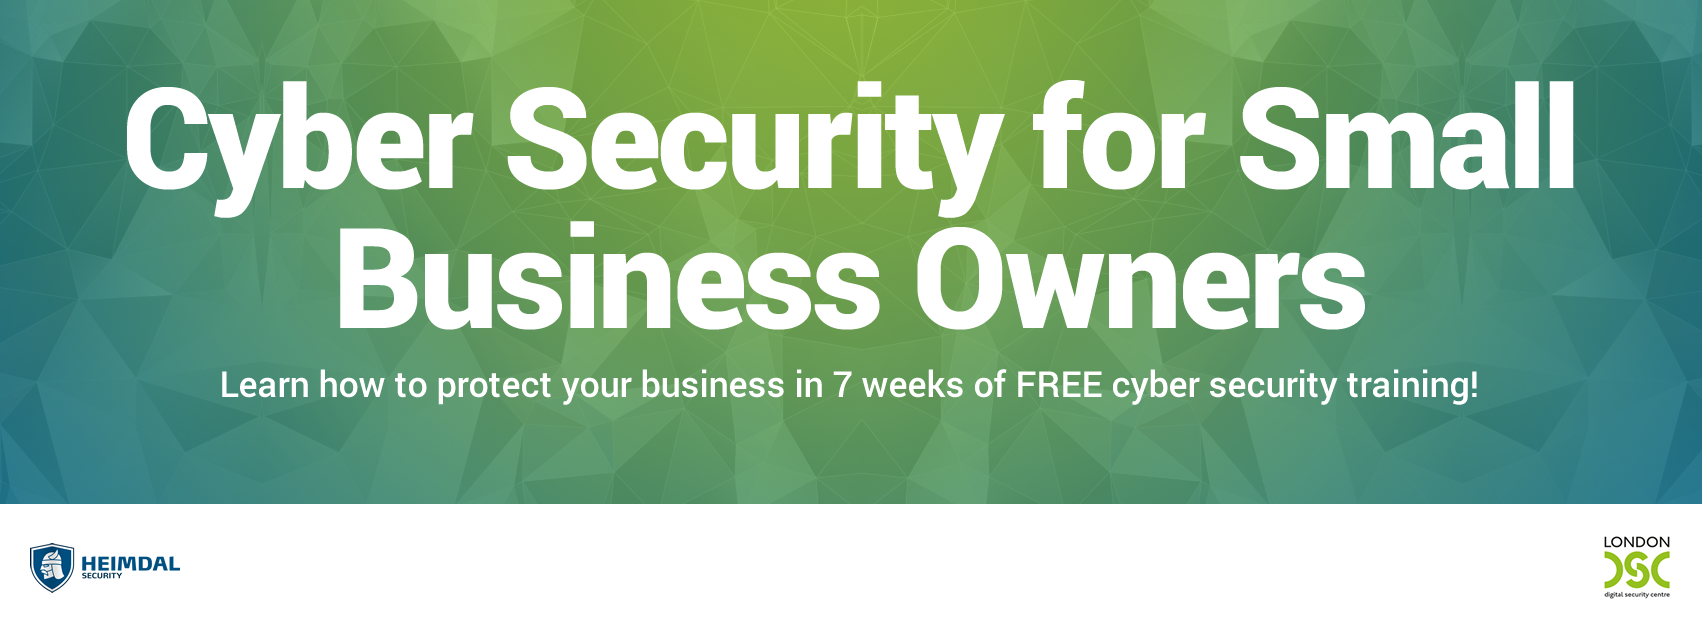 Cyber Security for Small Business Owners_1702x630_Facebook cover photo